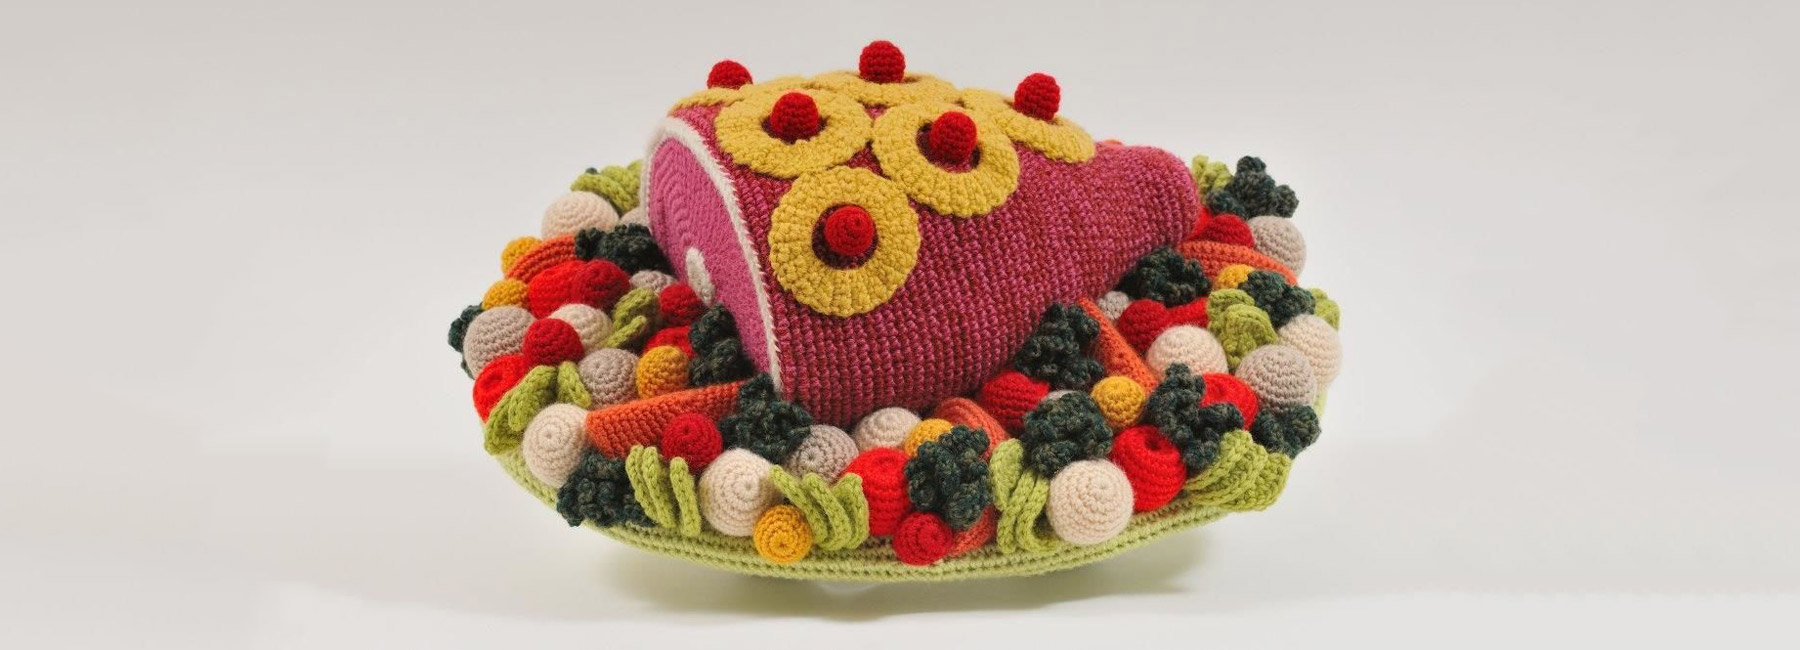 Amusing Crocheted Food Art